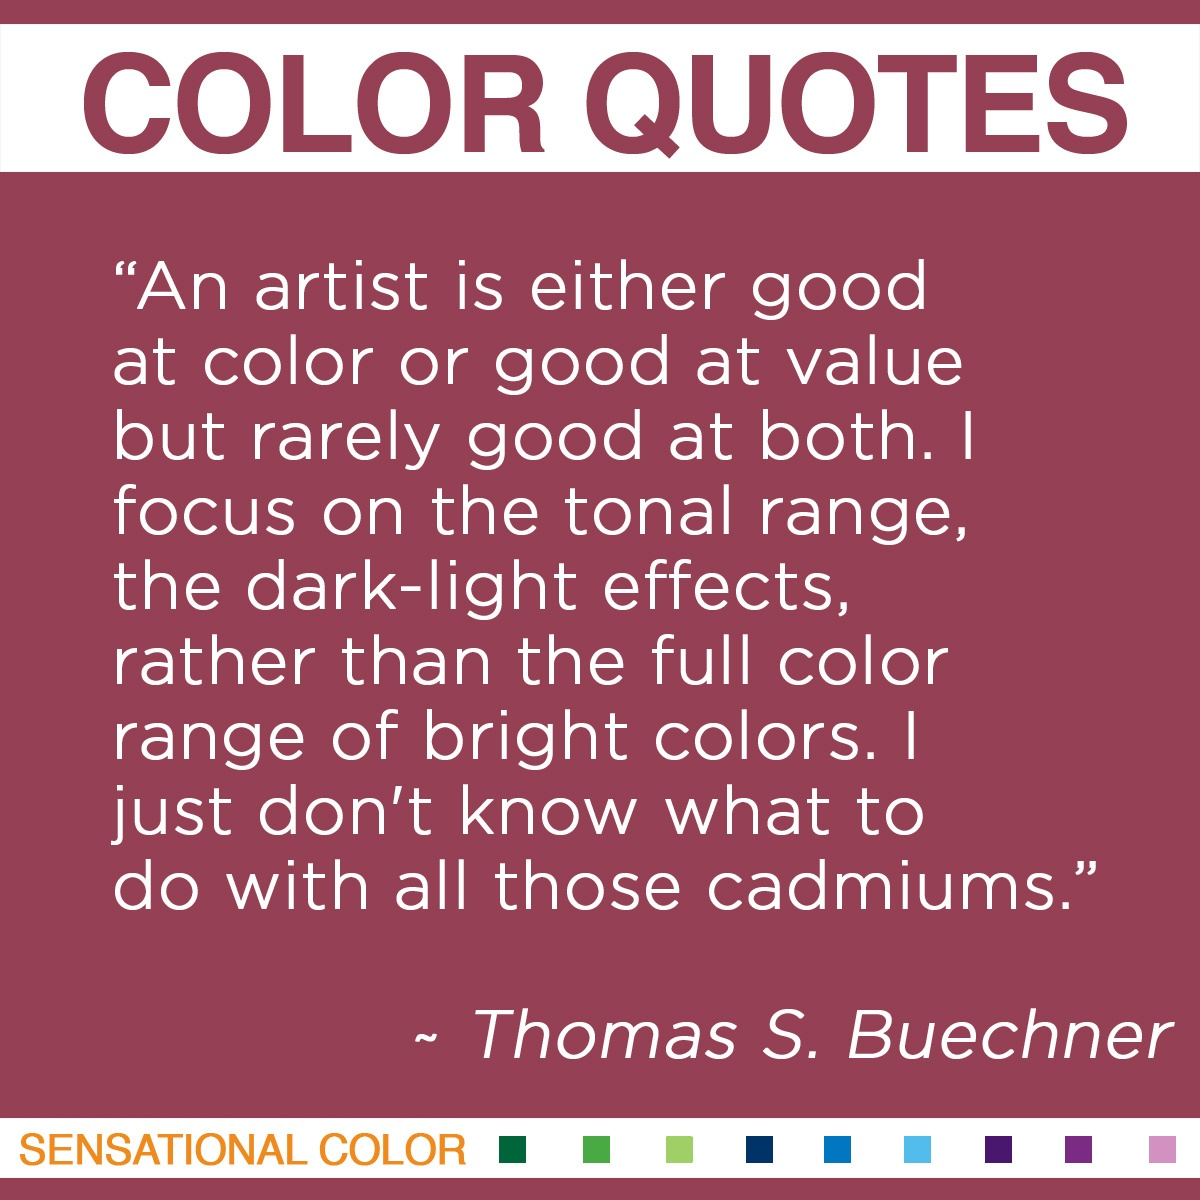 """An artist is either good at color or good at value but rarely good at both. I focus on the tonal range, the dark-light effects, rather than the full color range of bright colors. I just don't know what to do with all those cadmiums."" - Thomas S. Buechner"